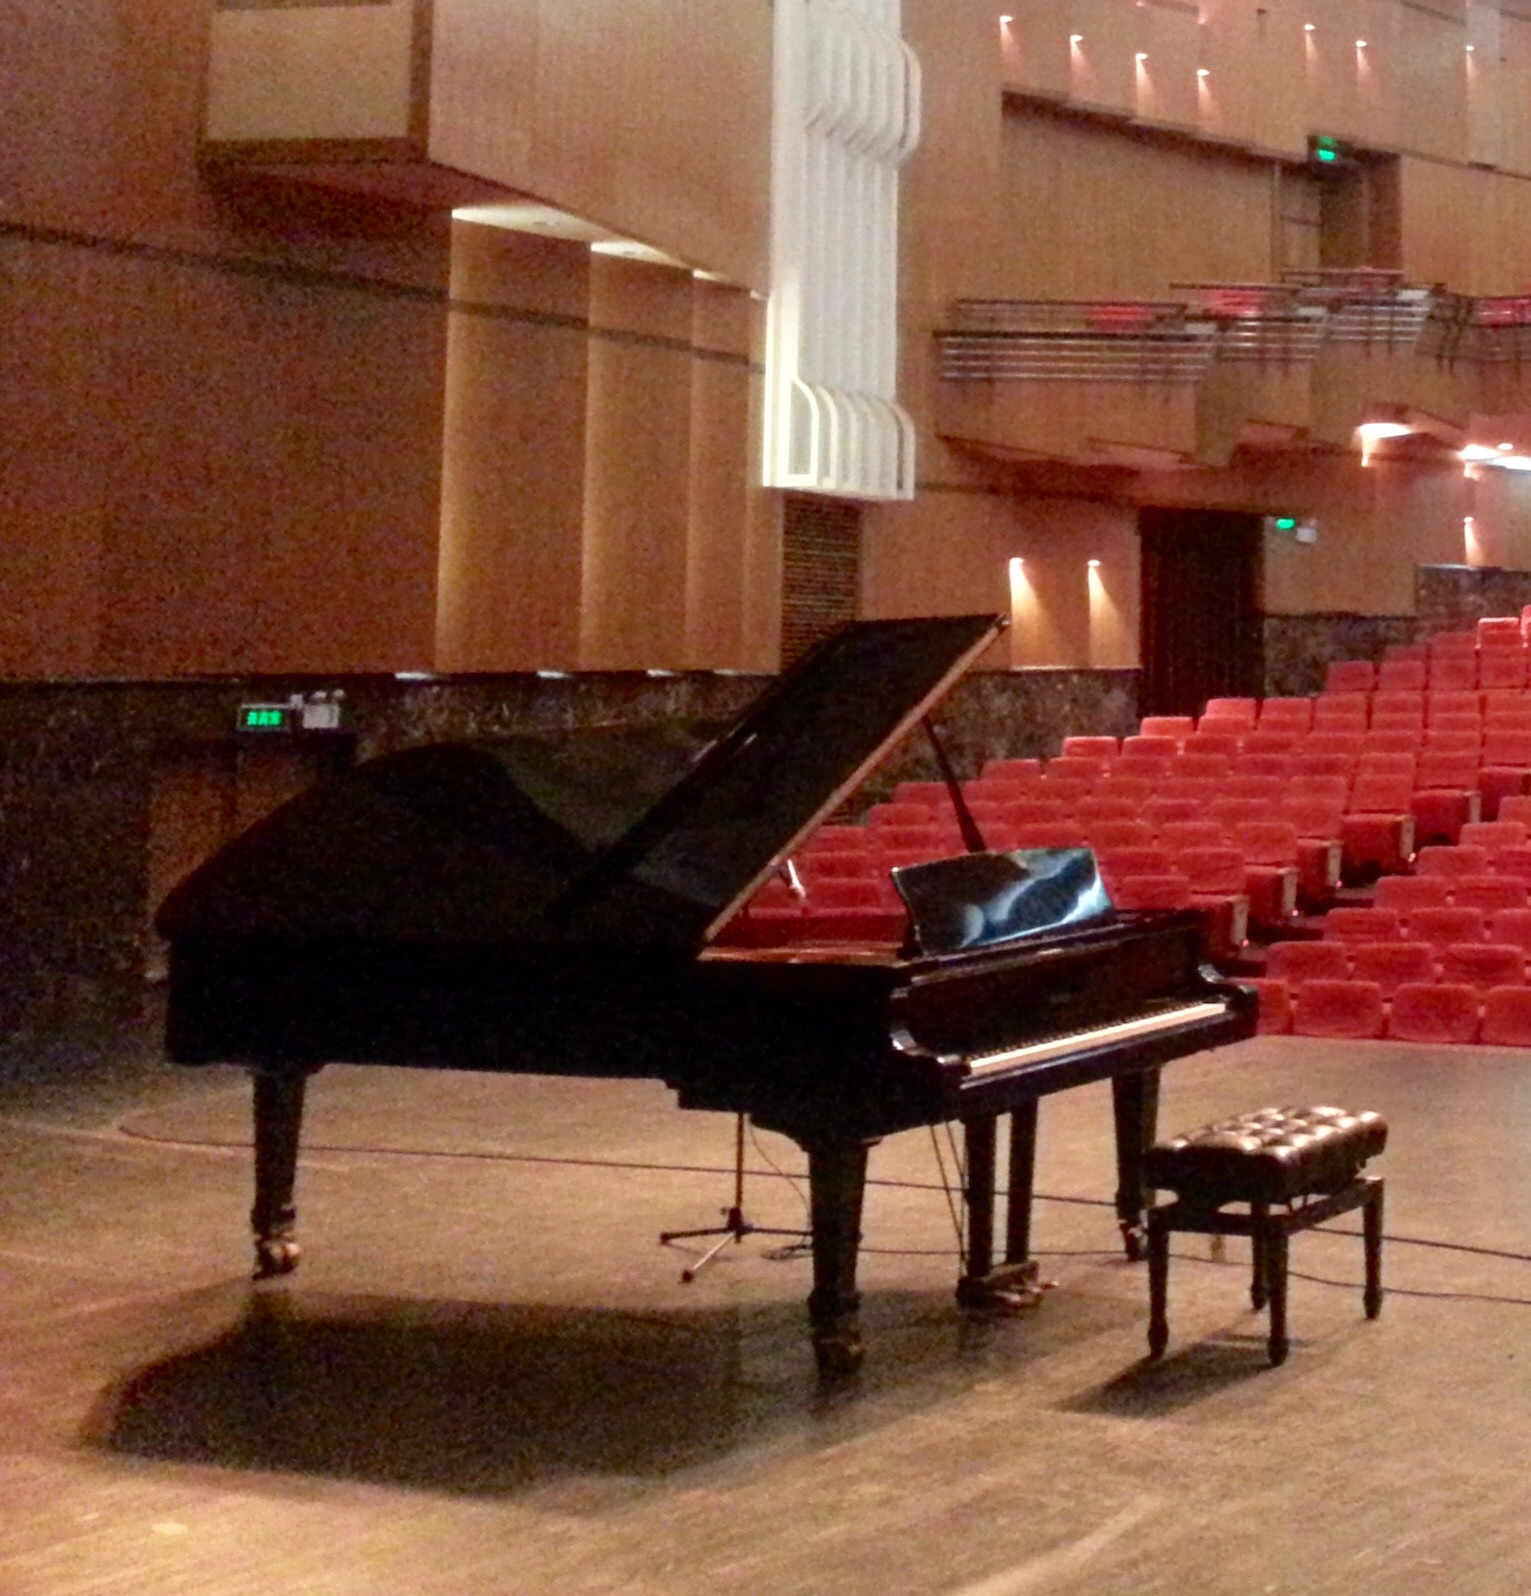 THE WINNER: My favorite of the China Tour 2015 instruments, this German Steinway delivered on all levels to the maximum. Beautiful colors, clear tone, an inspiration all around. Bravo bravissimo!